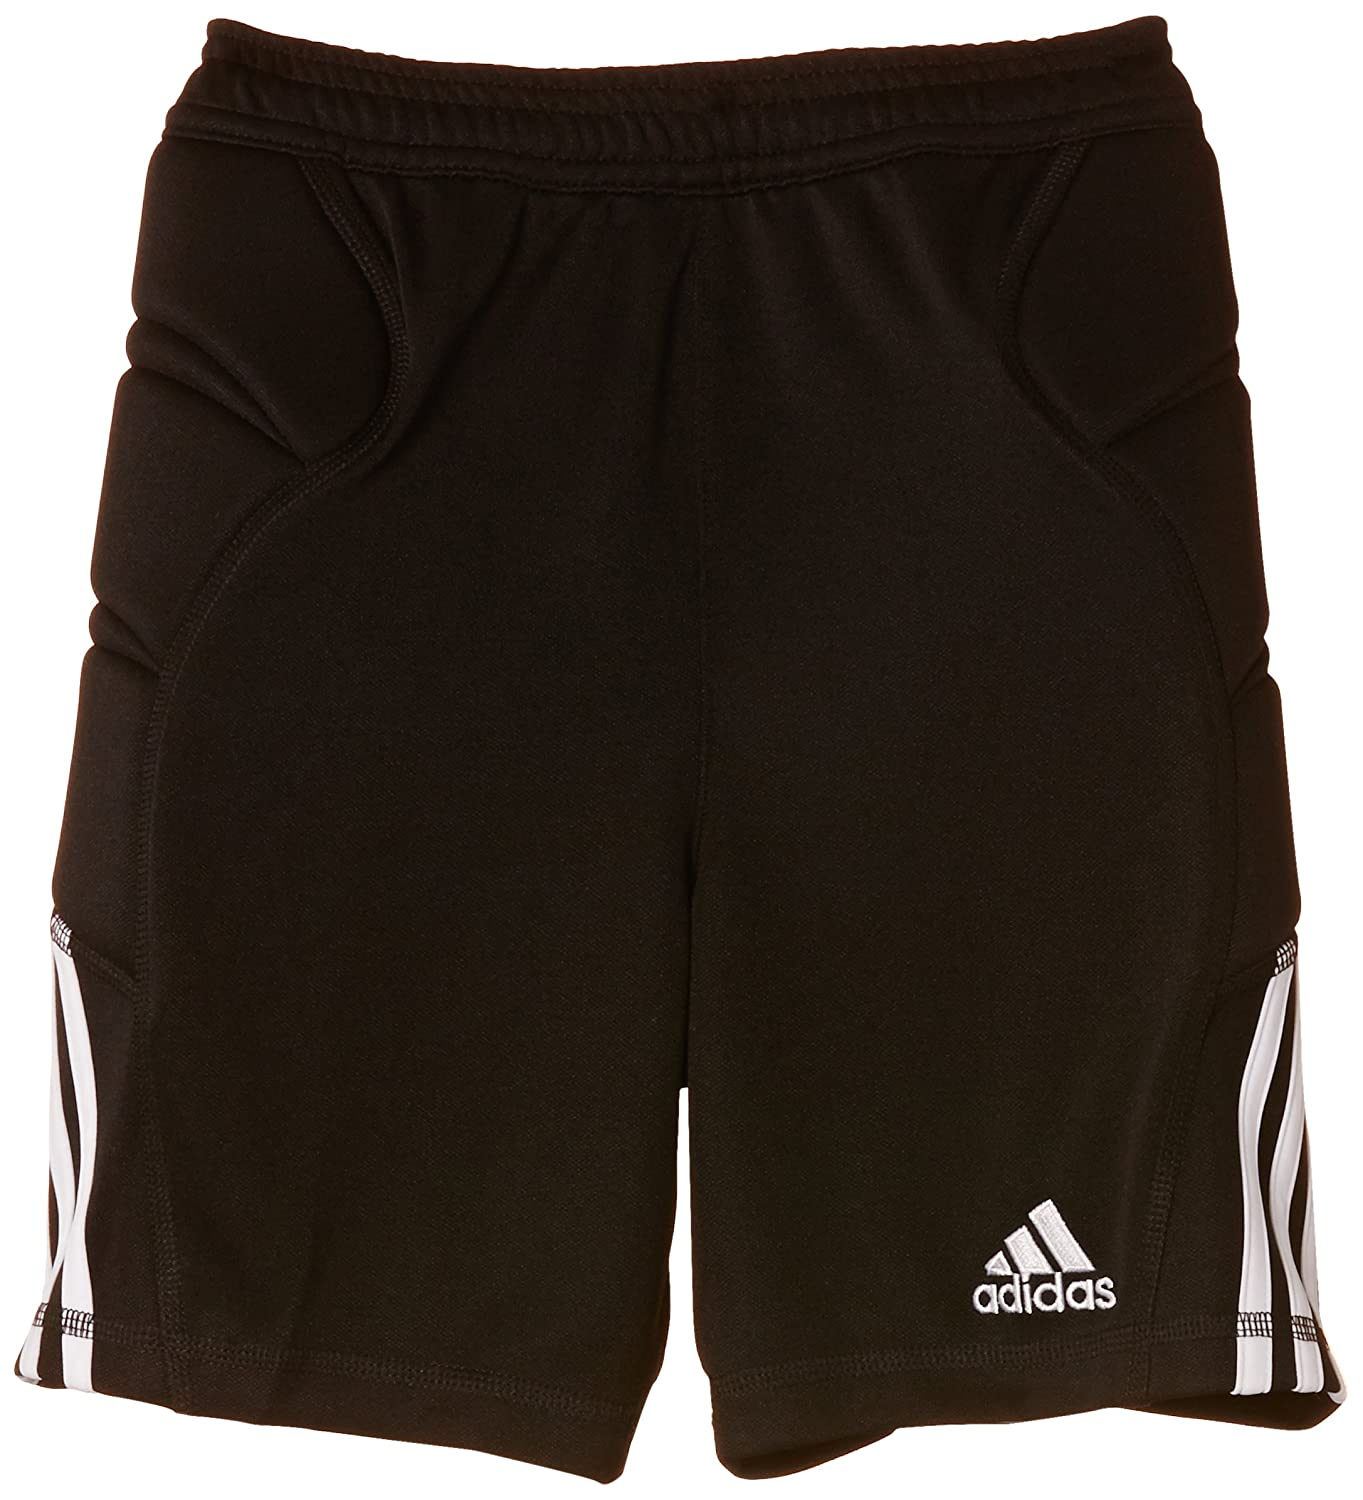 adidas Boy's Tierro 13 Goalkeeper Short